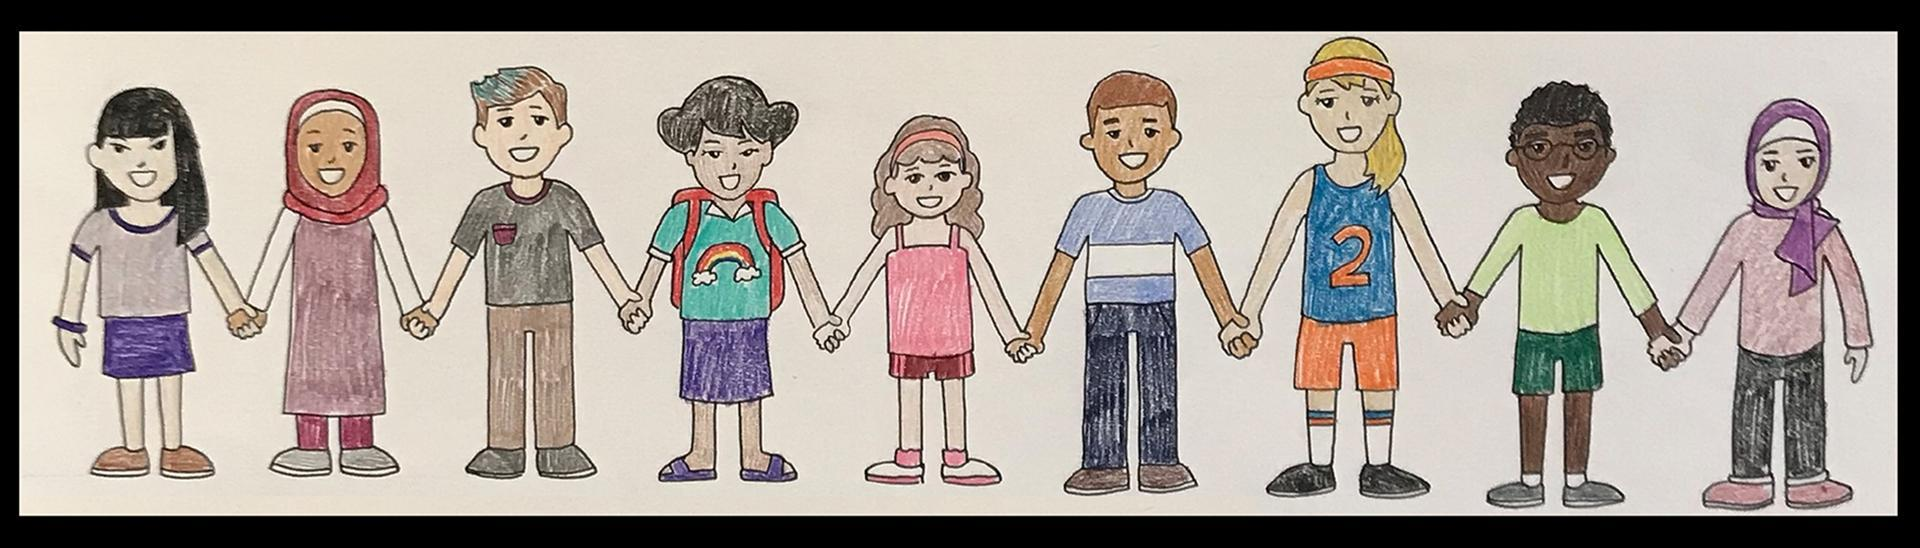 Cartoon drawing of students of different ethnicities holding hands